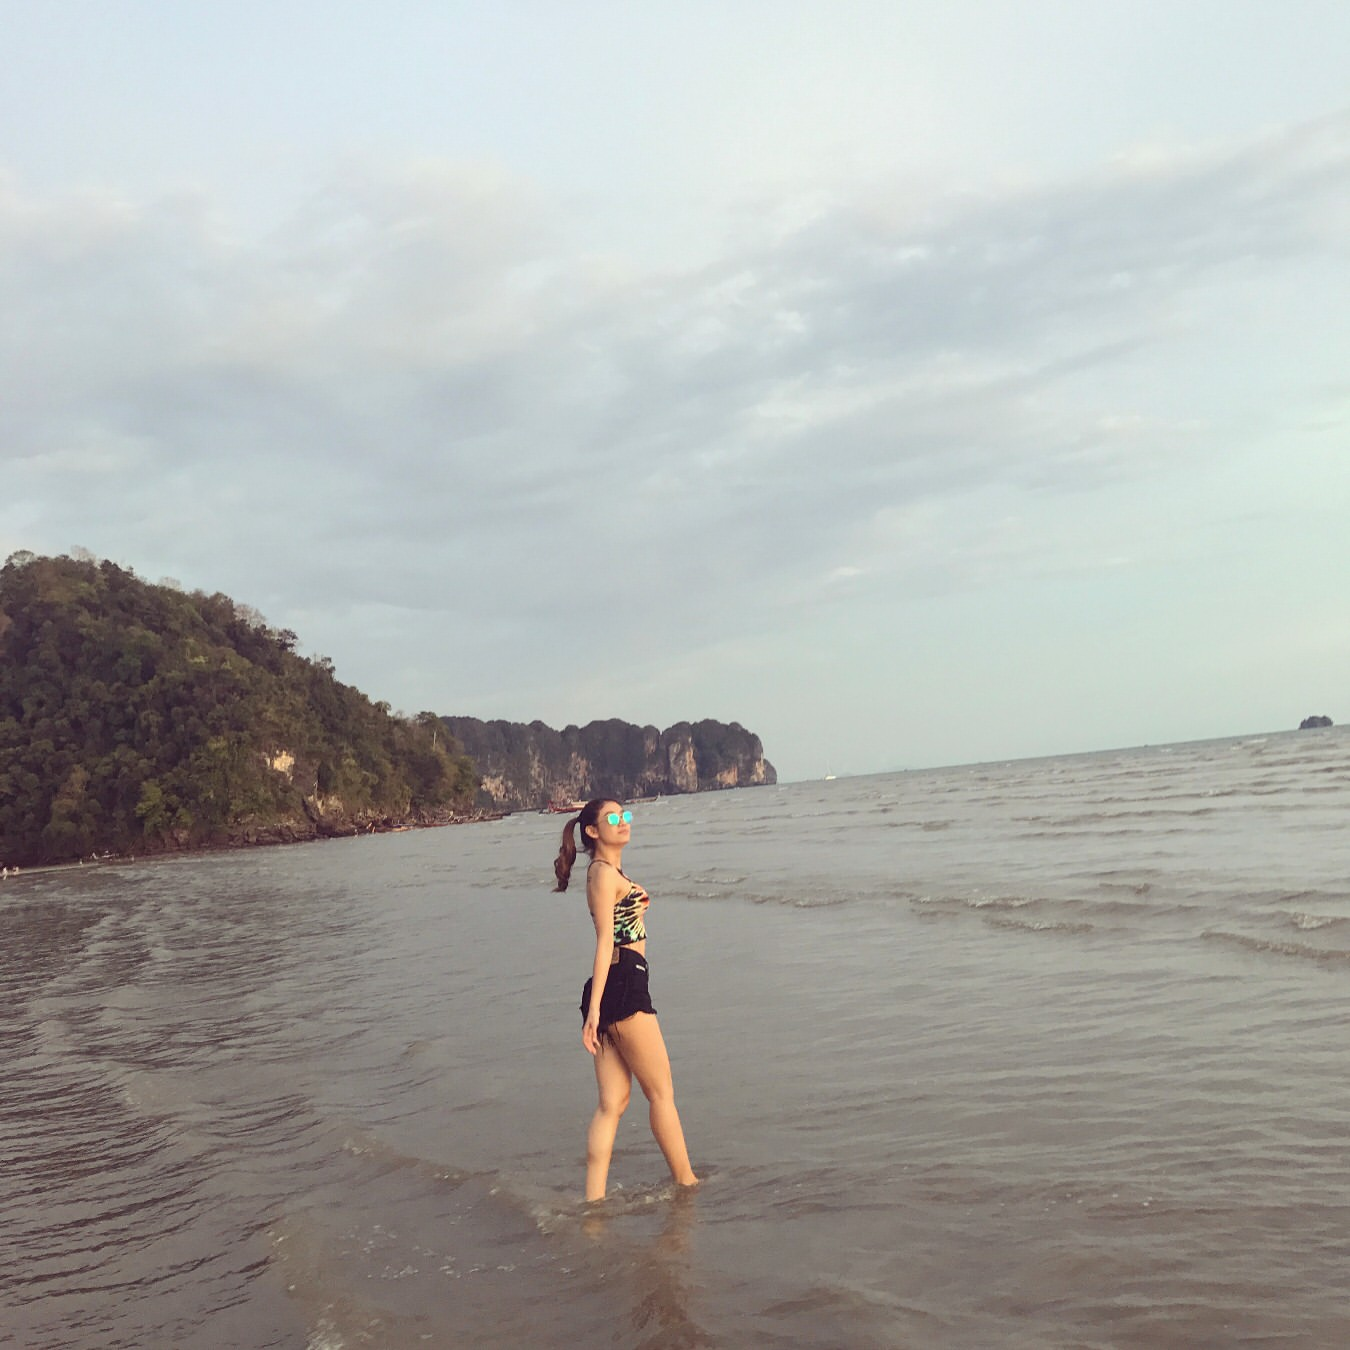 Thinzar Wint Kyaw Happy Time At The Beach In Myanmar New Holiday